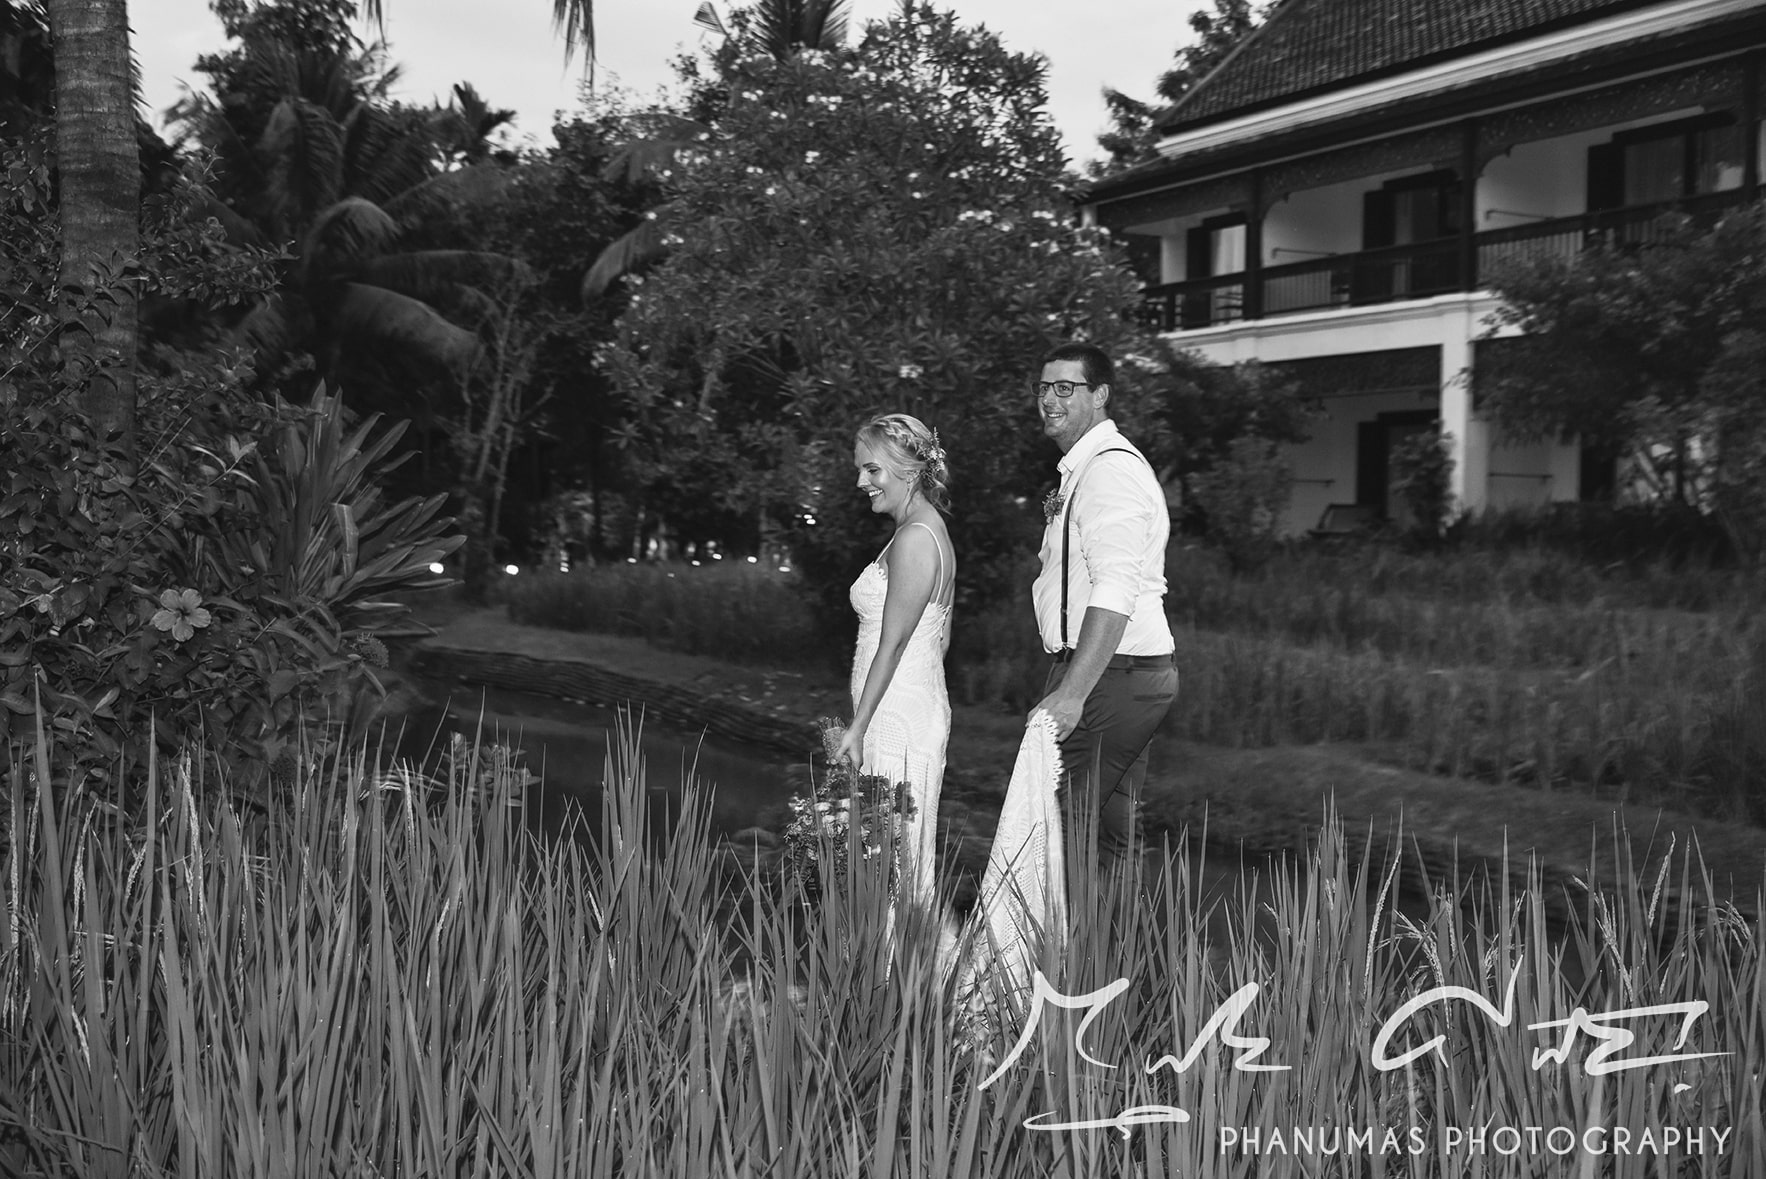 The bride and groom Chiang Mai wedding photoshoot